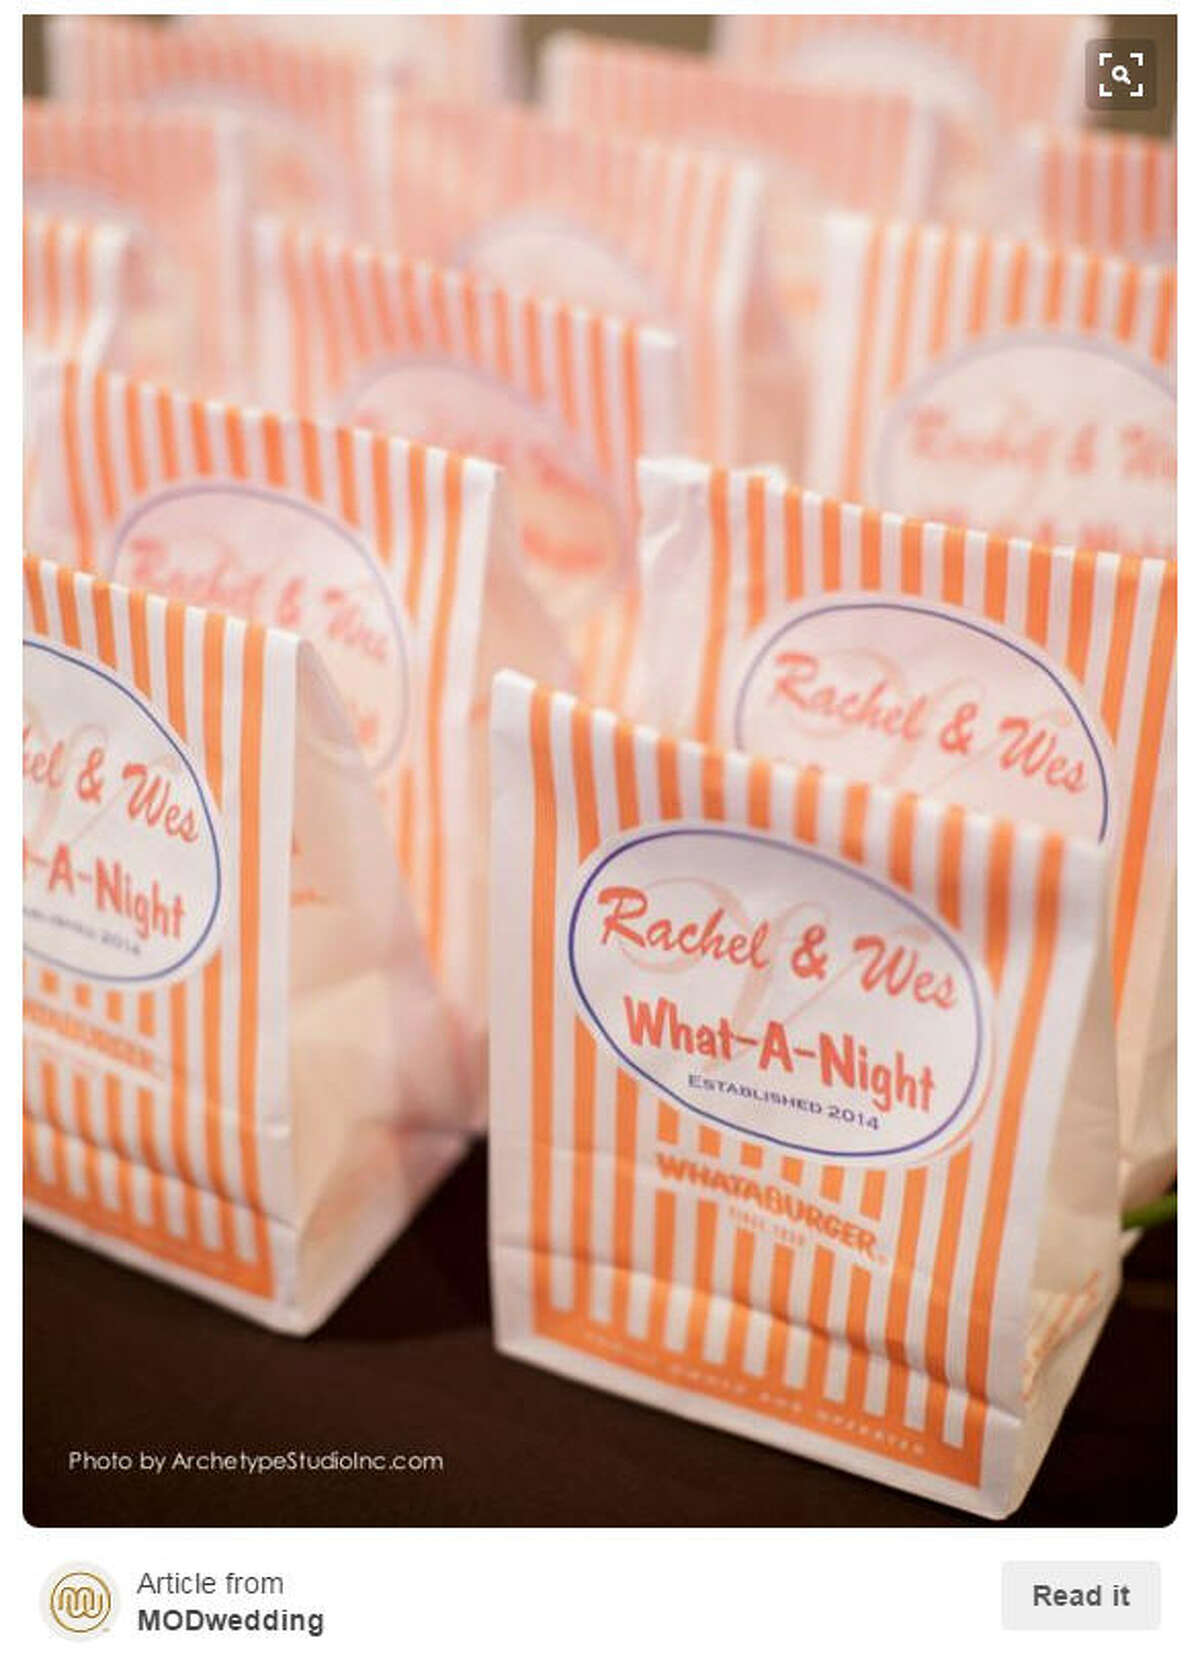 Whataburger:Does it really count as the ultimate Texas wedding if there is no Whataburger? (Hint: no it does not). Photo: Pinterest